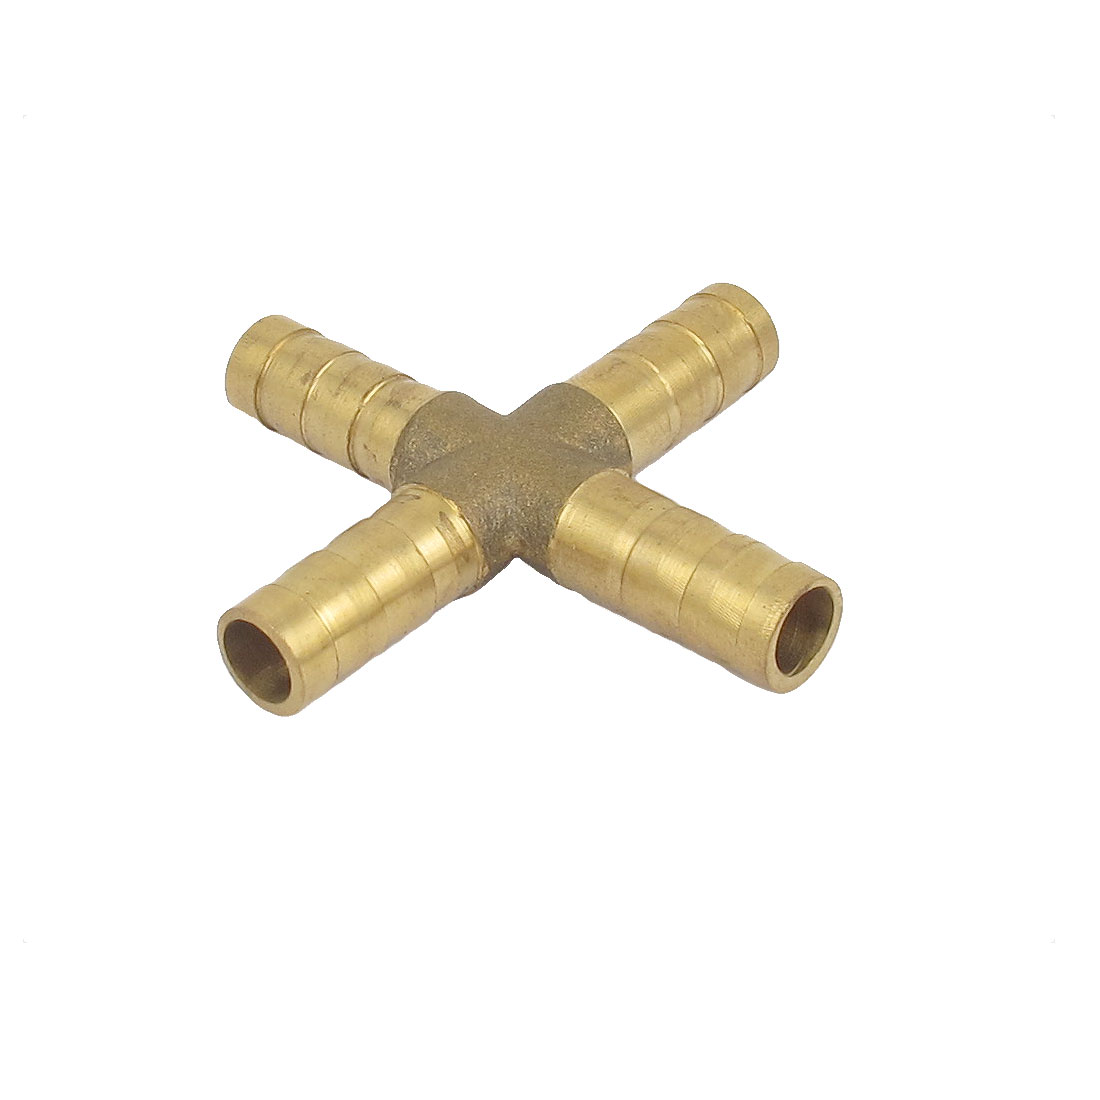 4 Way Cross Shaped 8mm Tube Hose Barb Air Connector Pipe Coupling Coupler Quick Joint Fitting